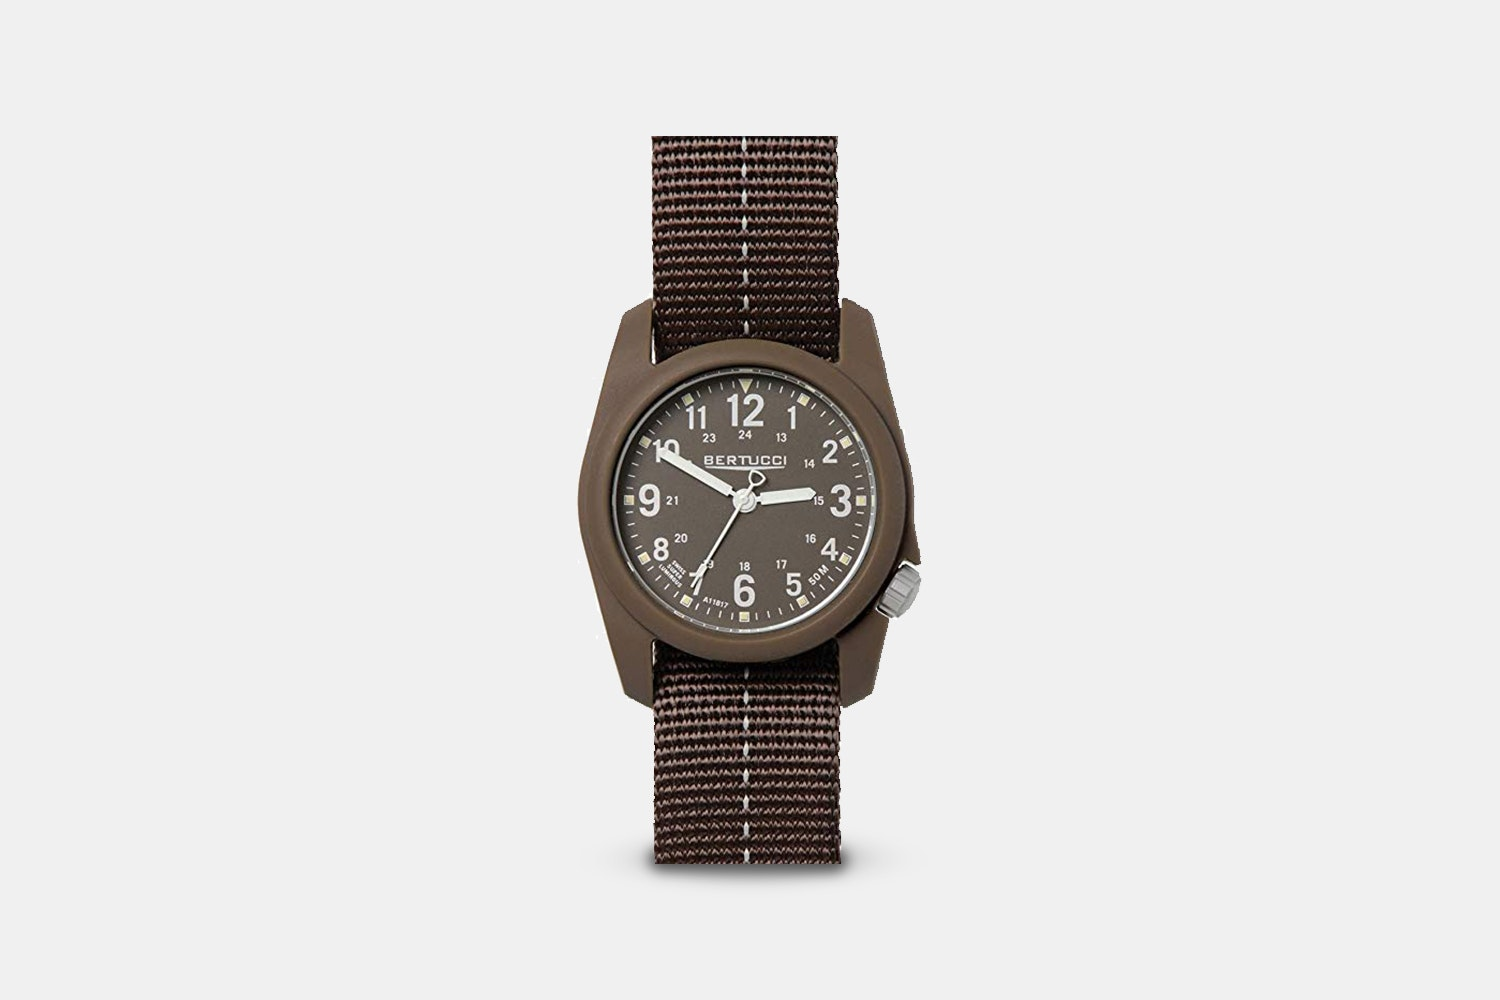 Ombra Brown w/ Stone Dial & Gray Dash